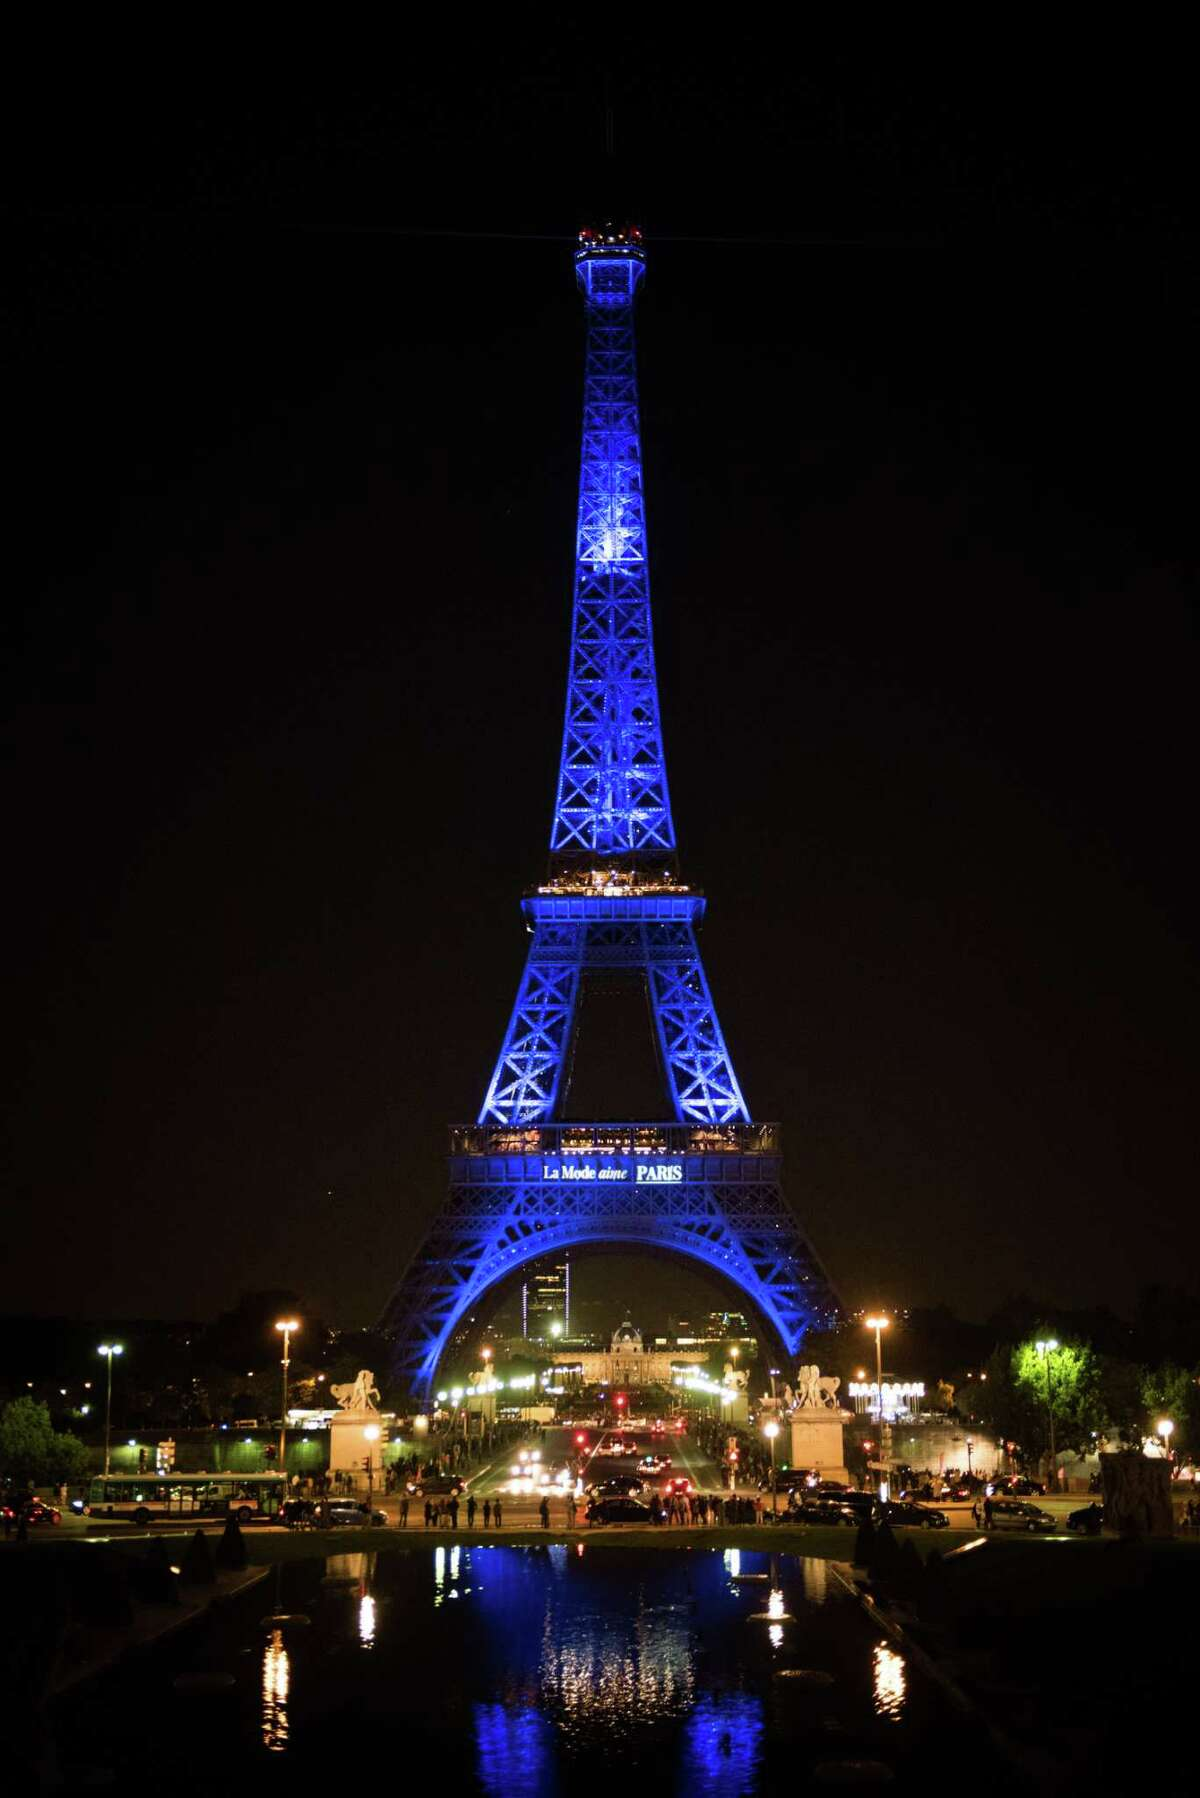 The Eiffel Tower is illuminated in the colors of